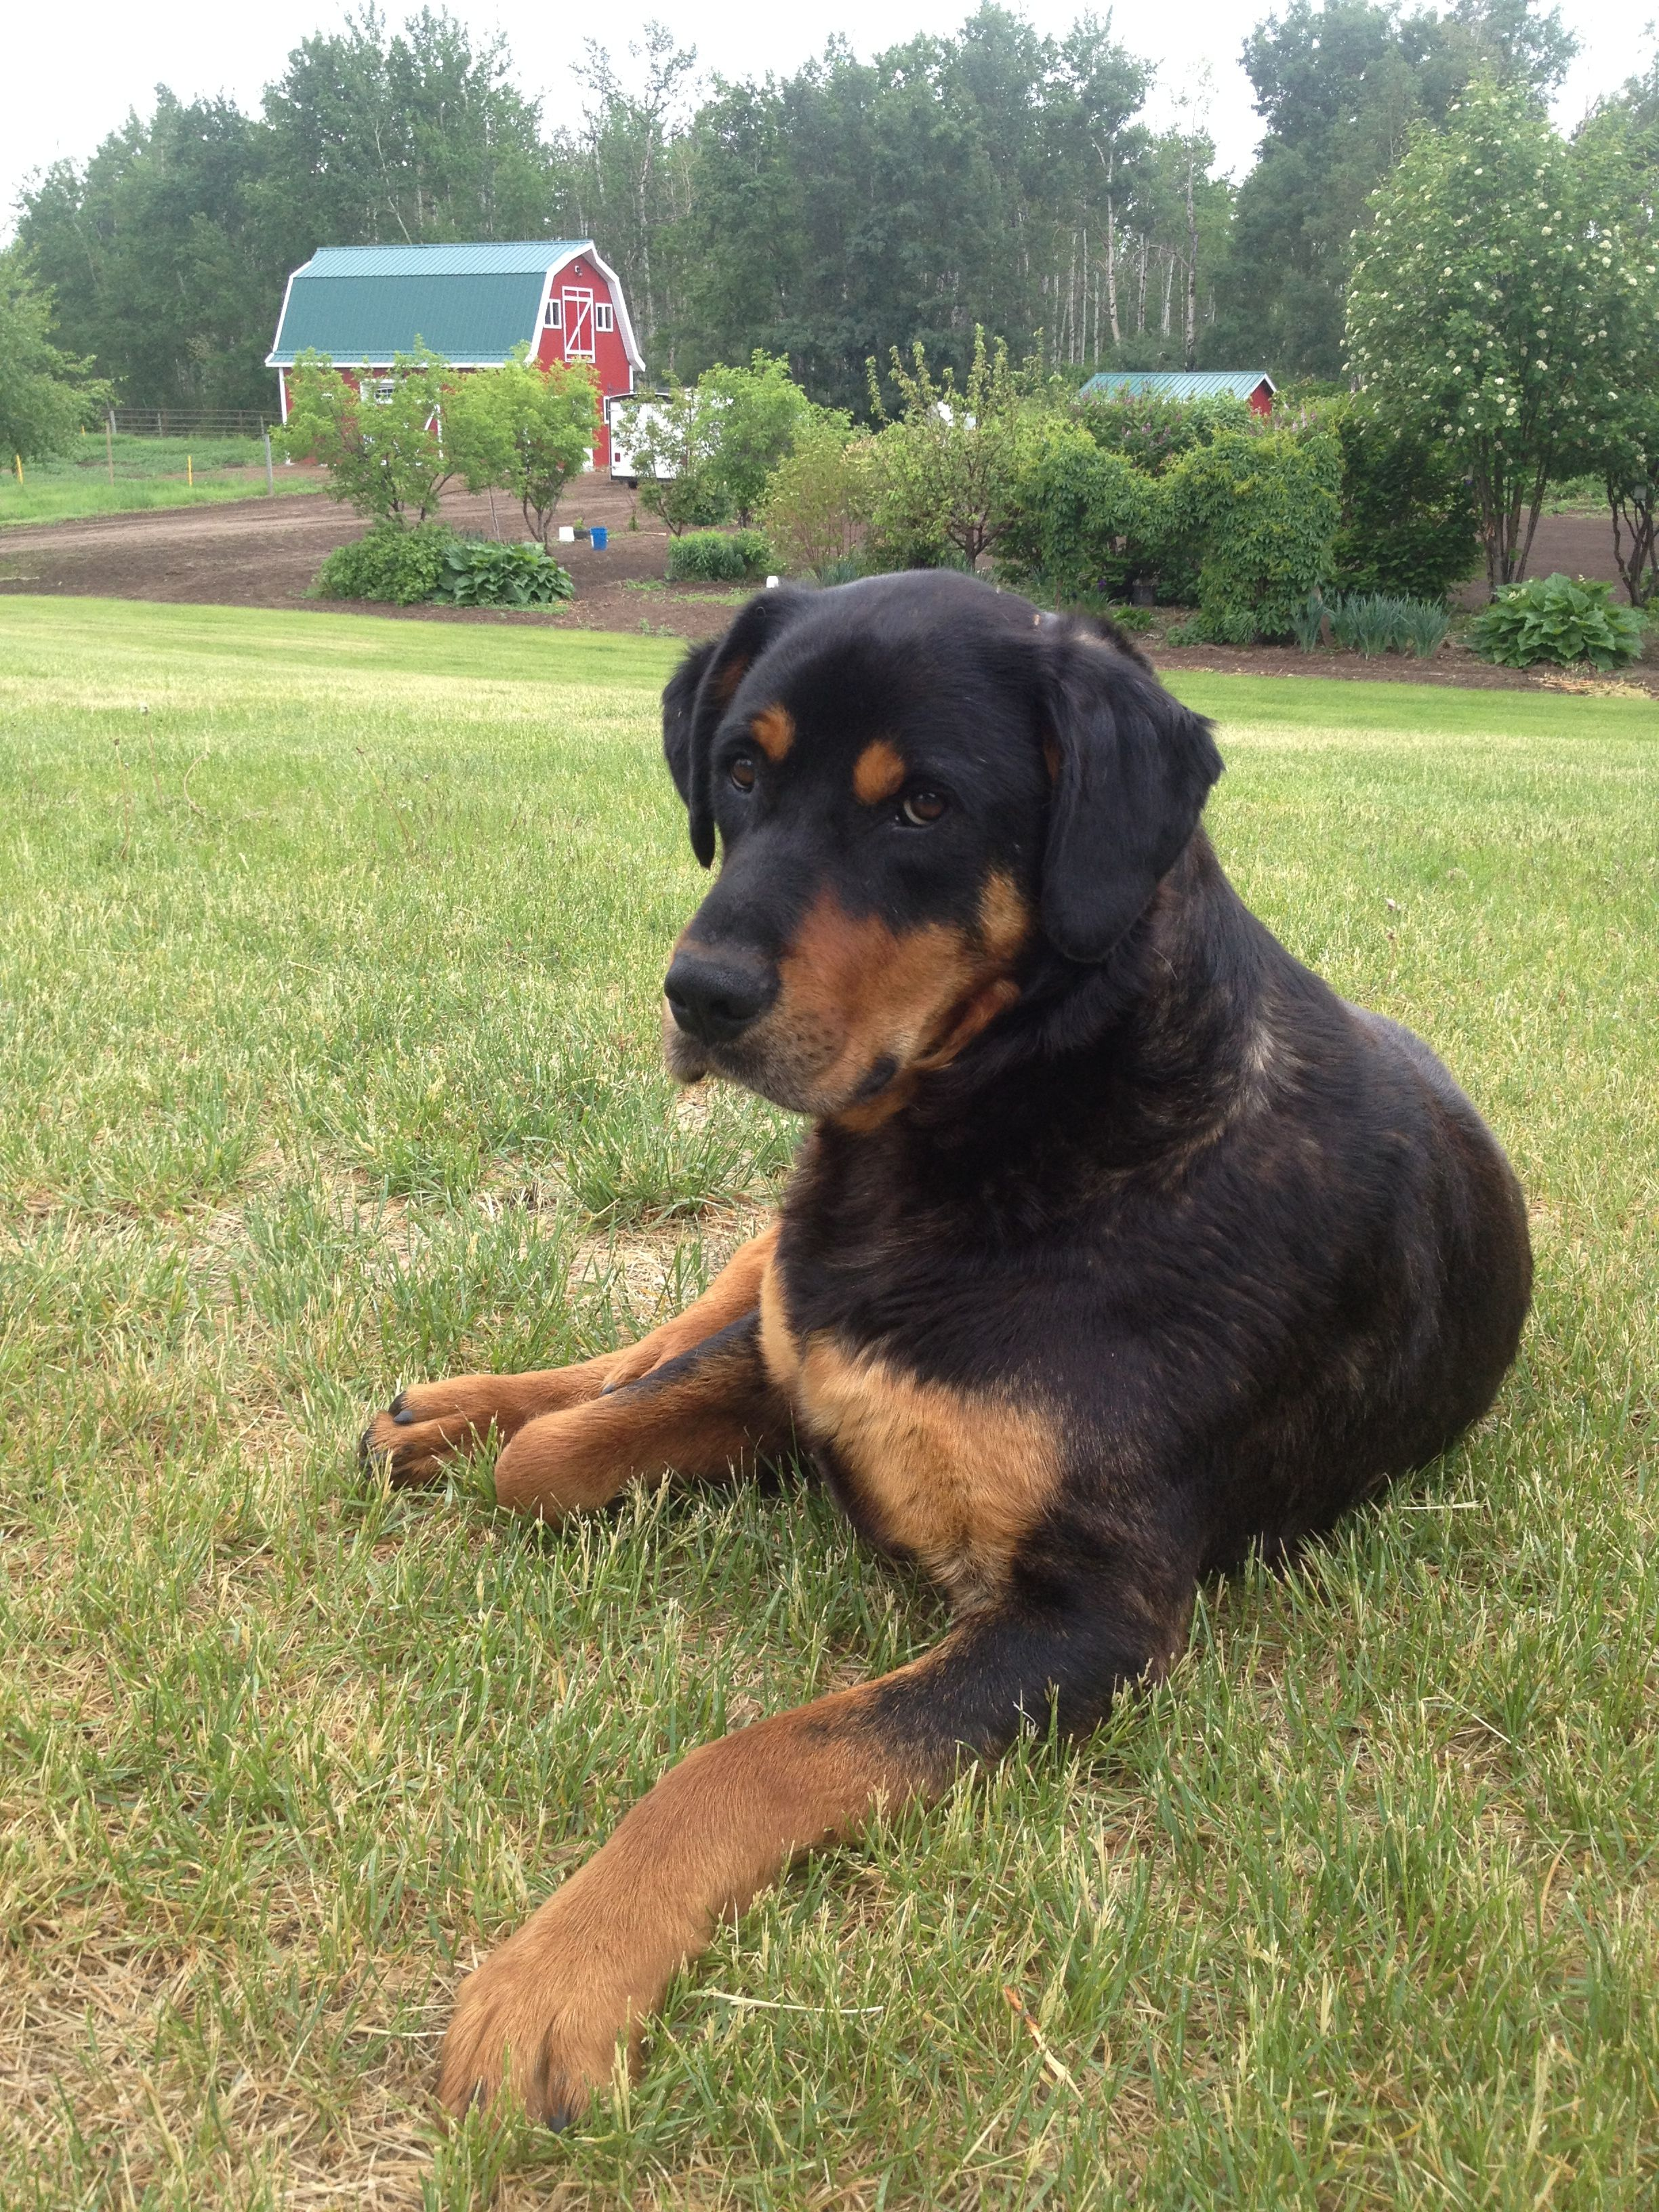 That Is Hobo And He Sure Does Look Like This Type Of Rottweiler